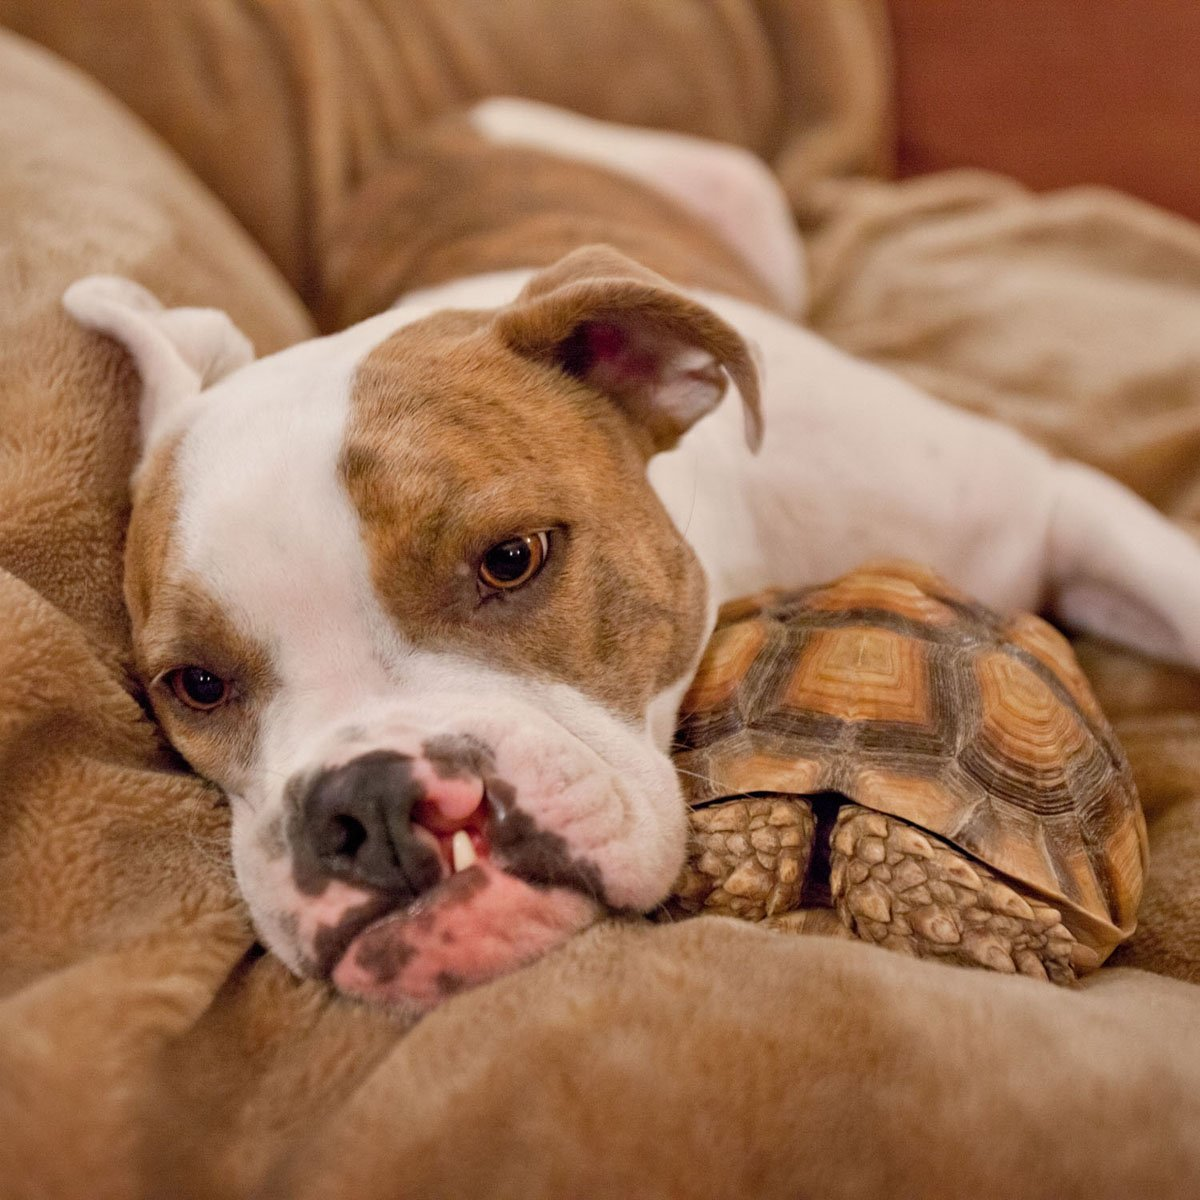 Puka the dog cuddles with a turtle